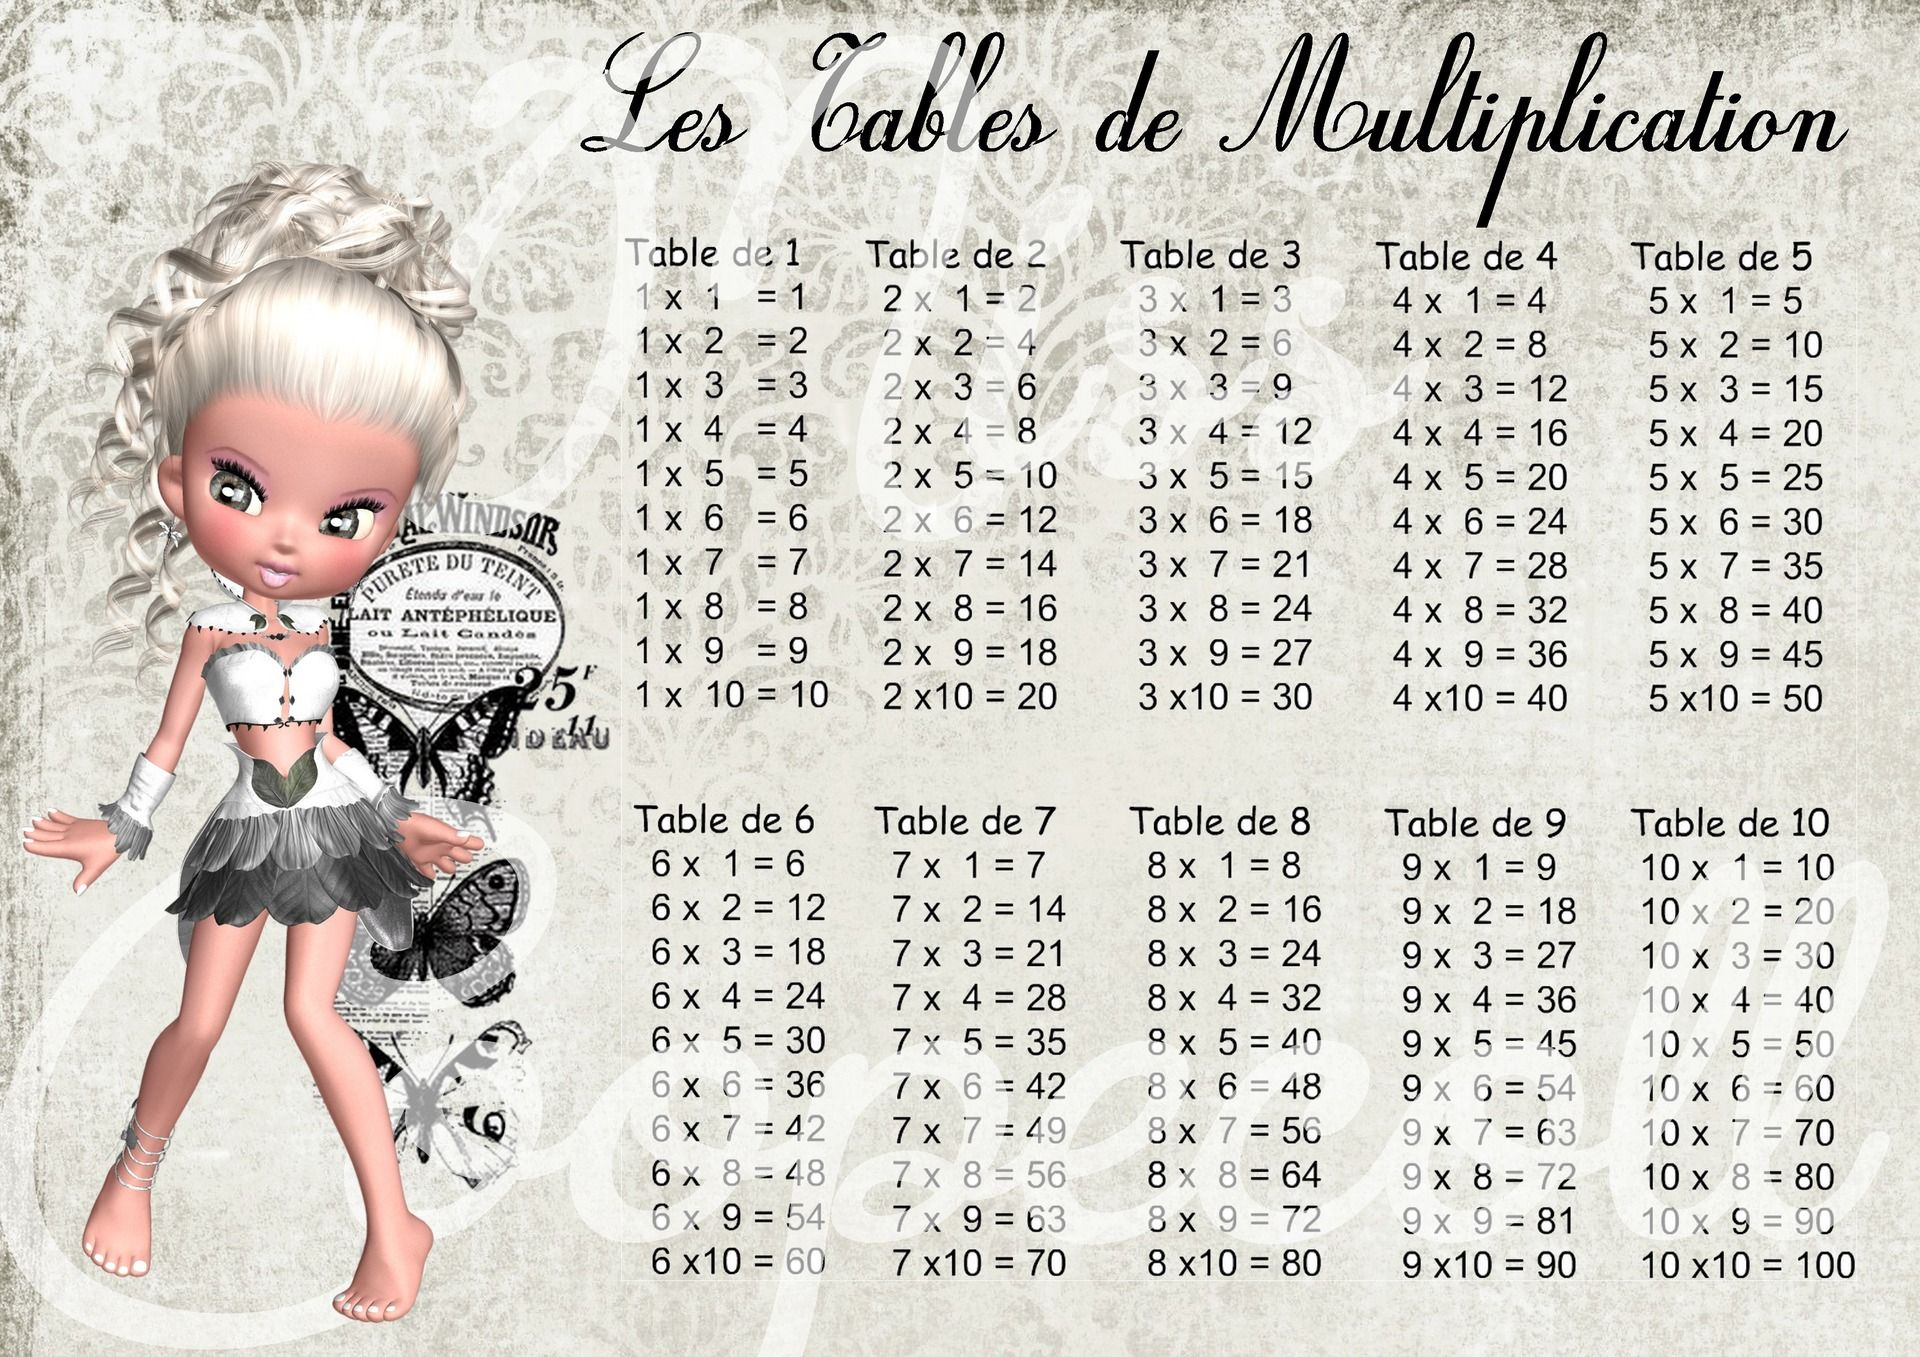 Table de multiplication plastifi e format a4 miss beauty - Table de multiplication vierge a imprimer ...